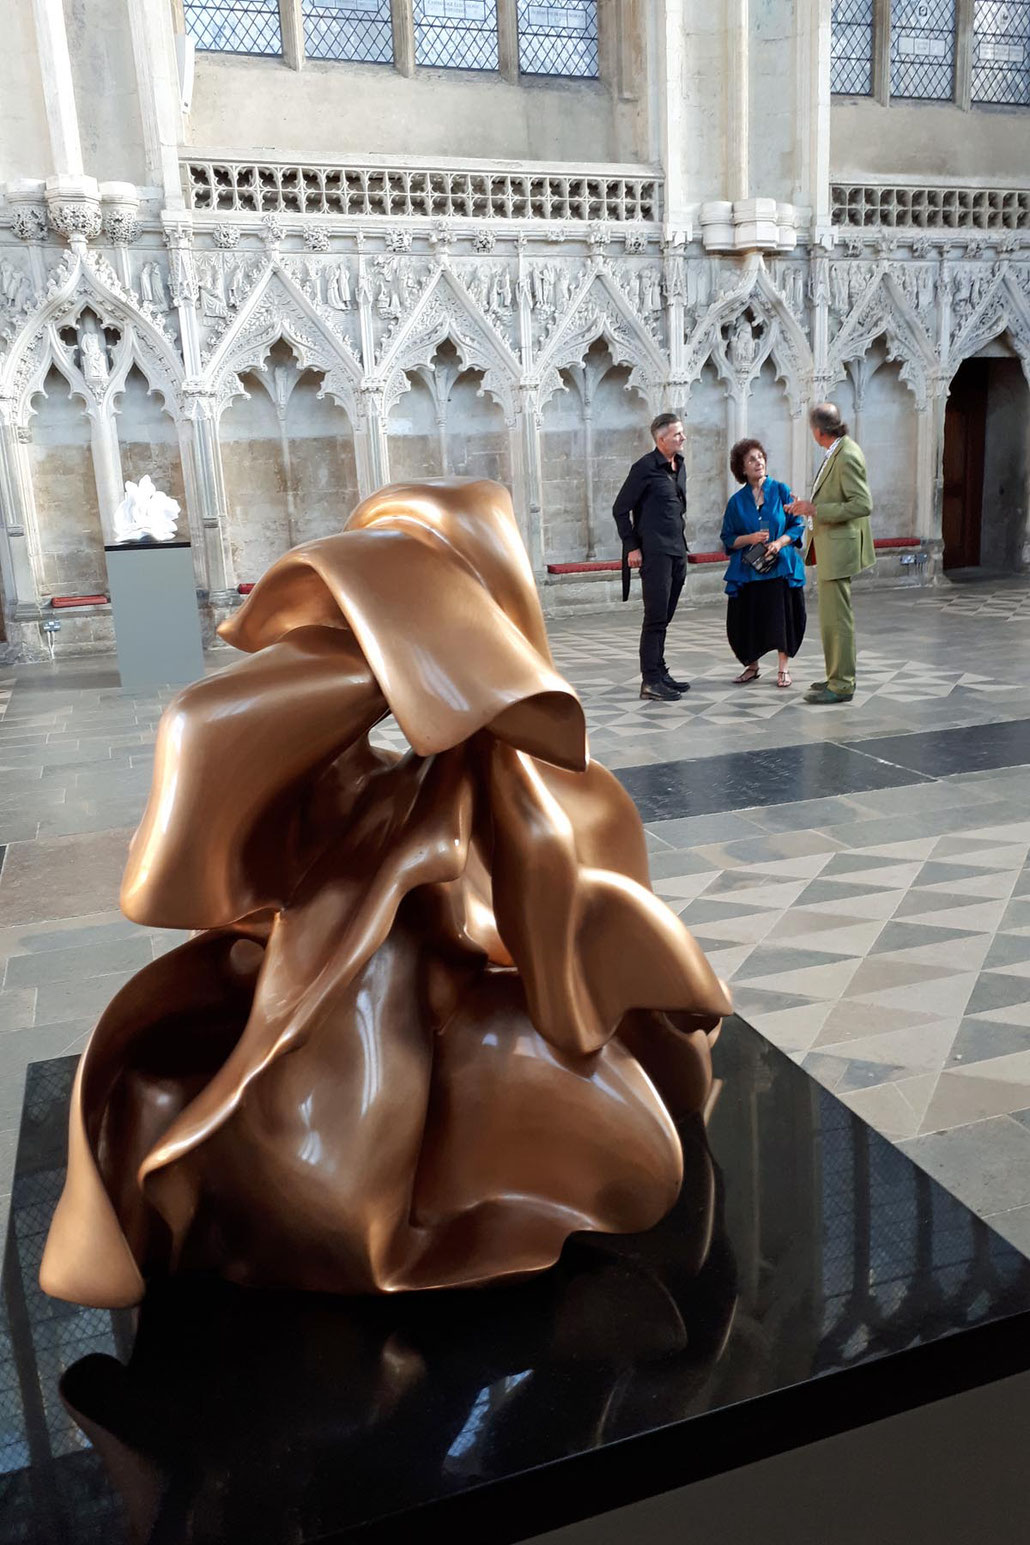 Bronze sculpture by famous sculptor Helaine Blumenfeld OBE. This MASTERPIECE is on show at Ely cathedral. HEX is a Fellow of the RSS in London